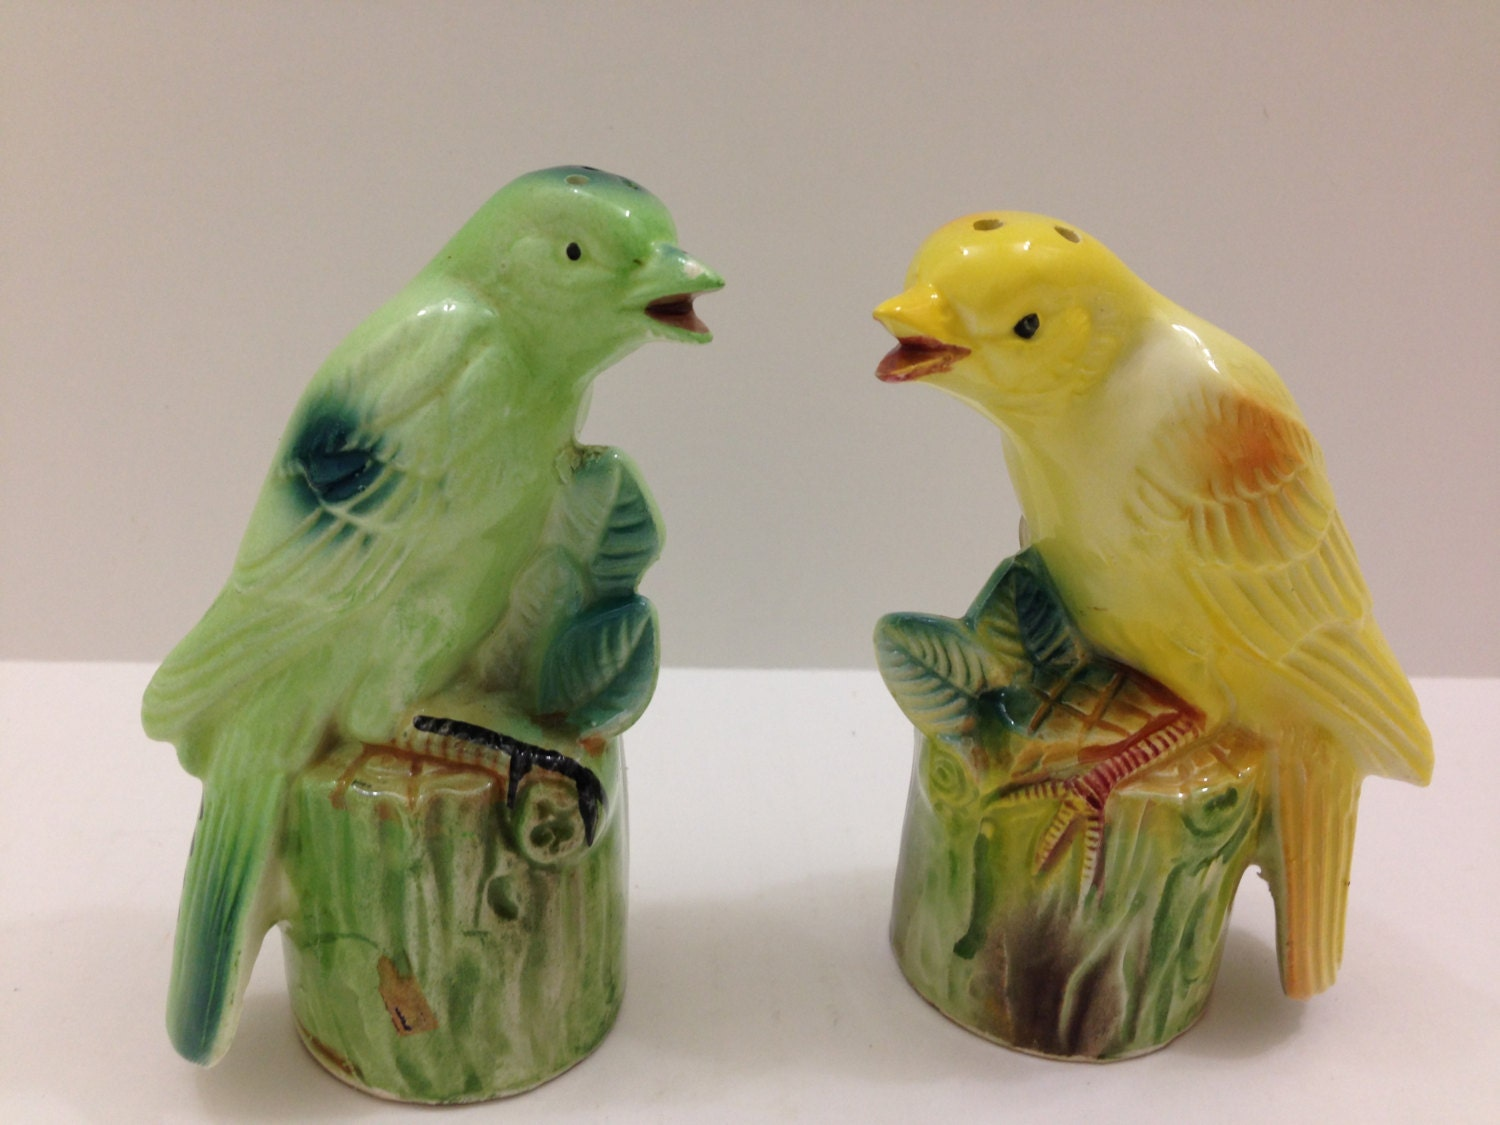 Vintage Bird Salt Amp Pepper Shakers With Squeakers Made In